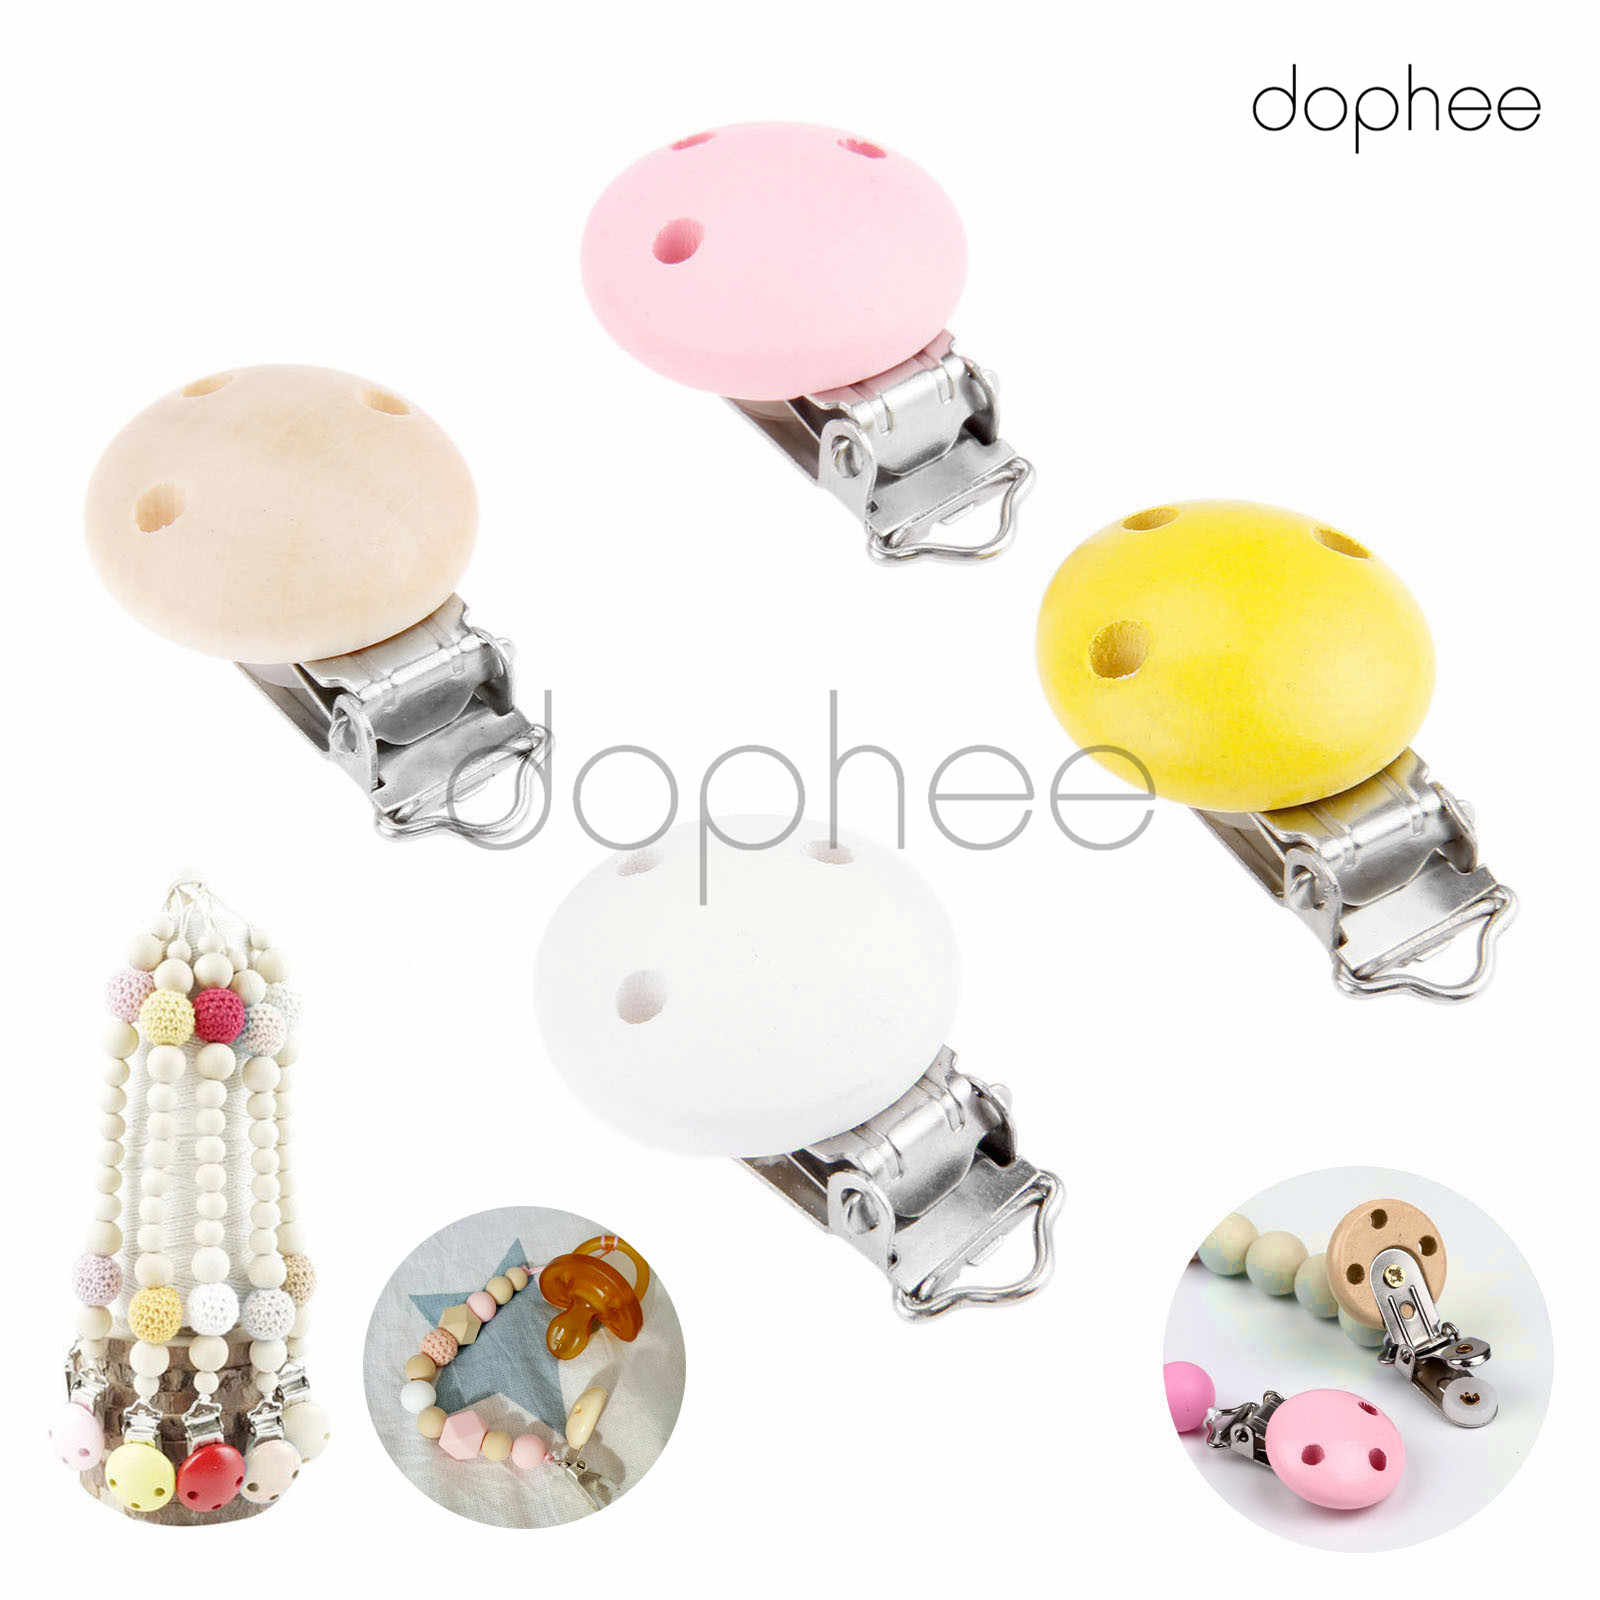 dophee 10pcs Multi-Color Natural Wooden Baby Pacifier Clips Soother Infant Dummy Holder Round Nipple Clasps For Baby Teether Toy